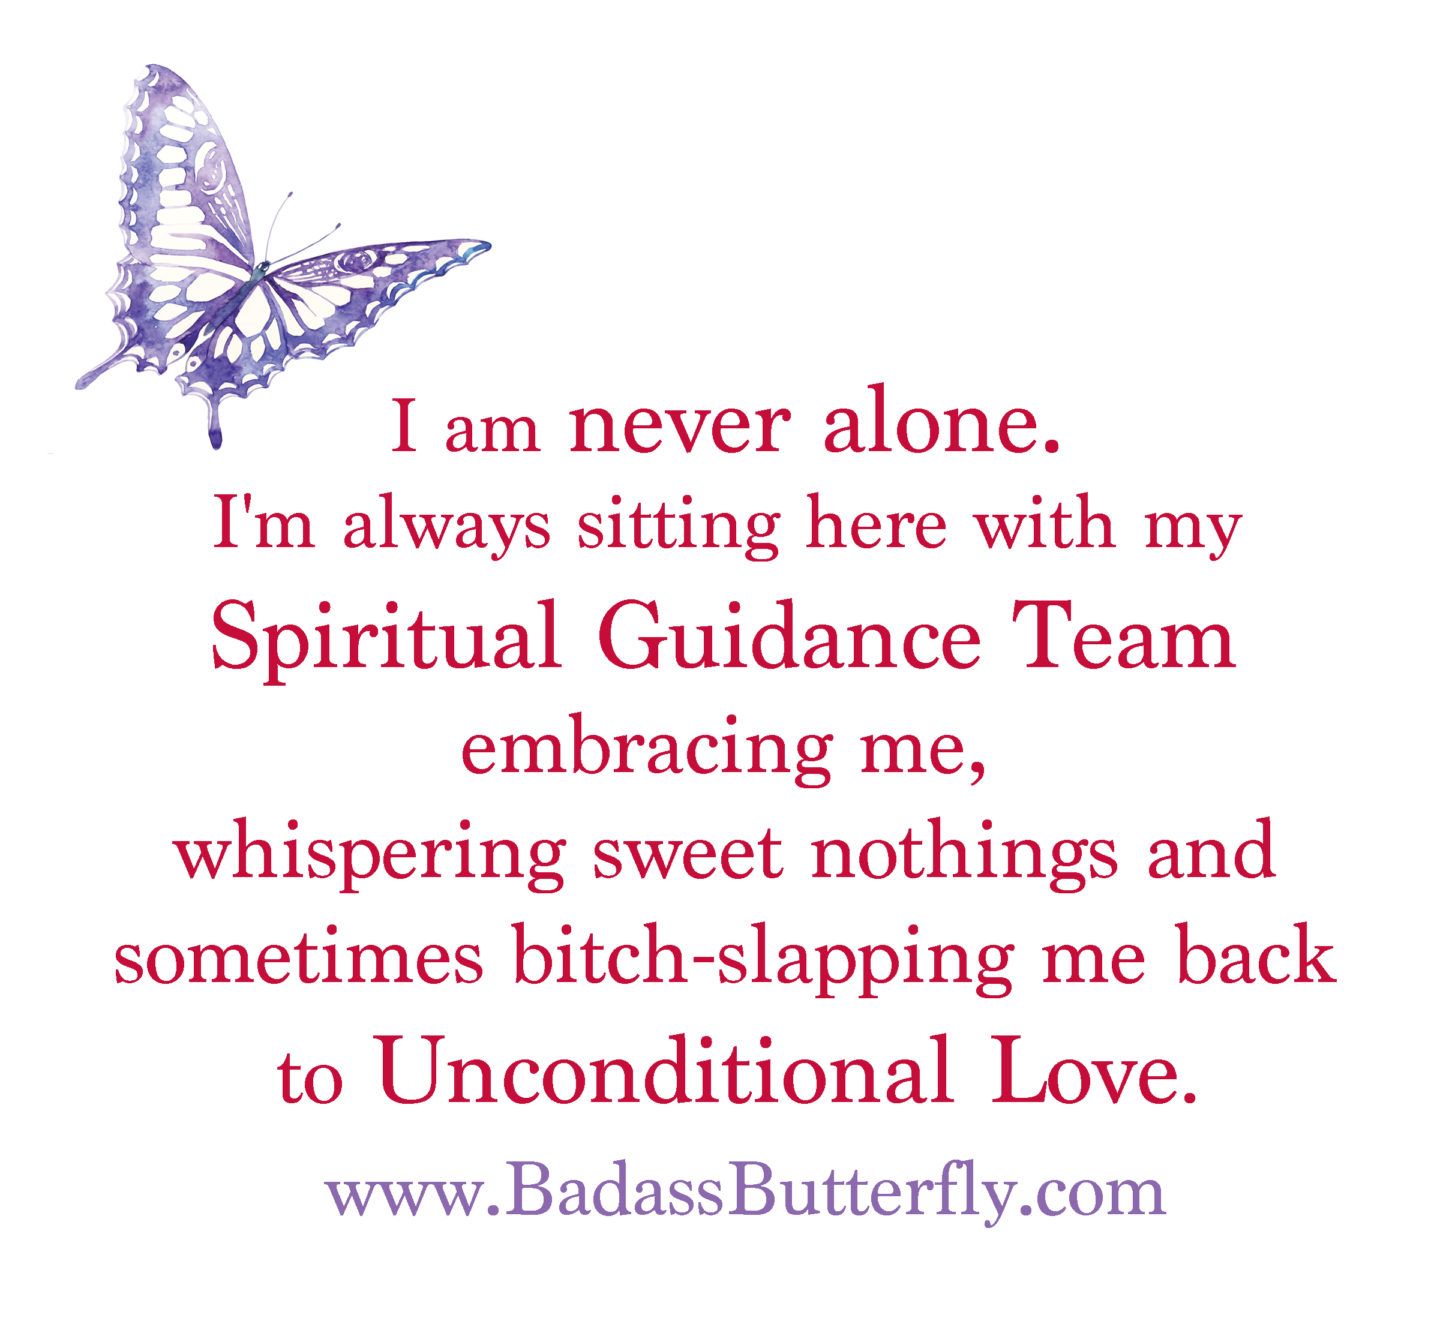 spiritual guidance team poster